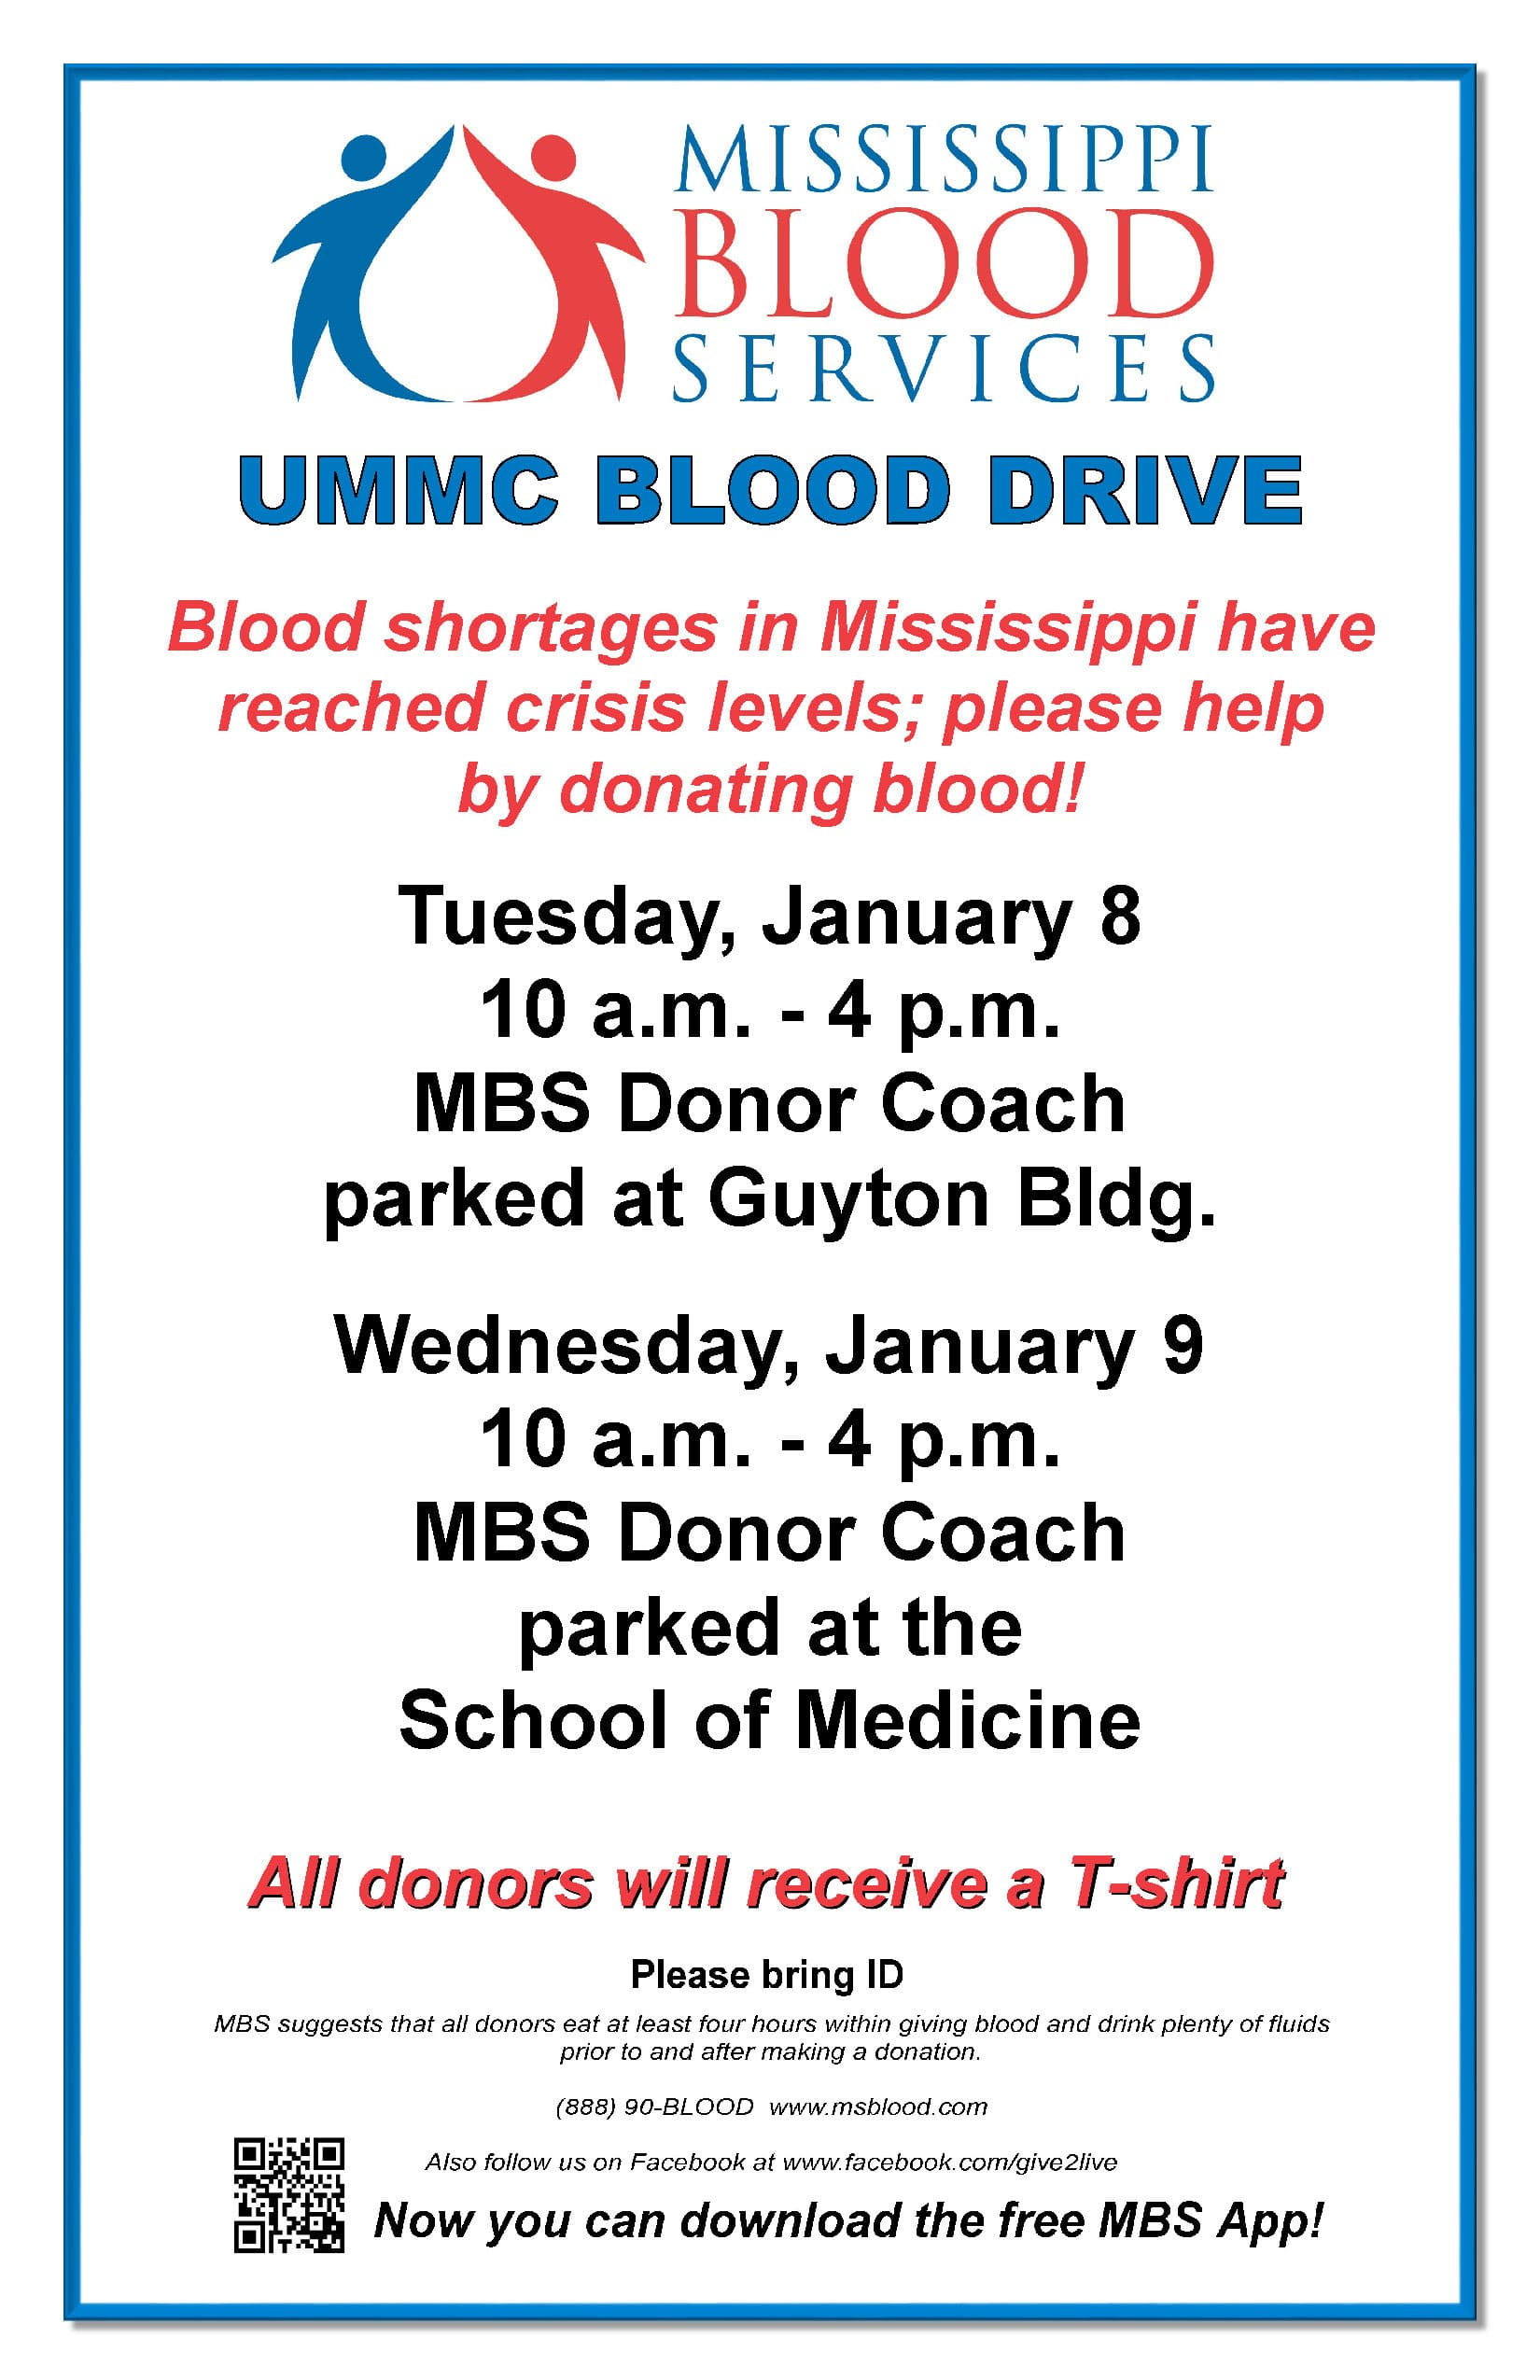 Emergency campus blood drive to allow UMMC community to give back